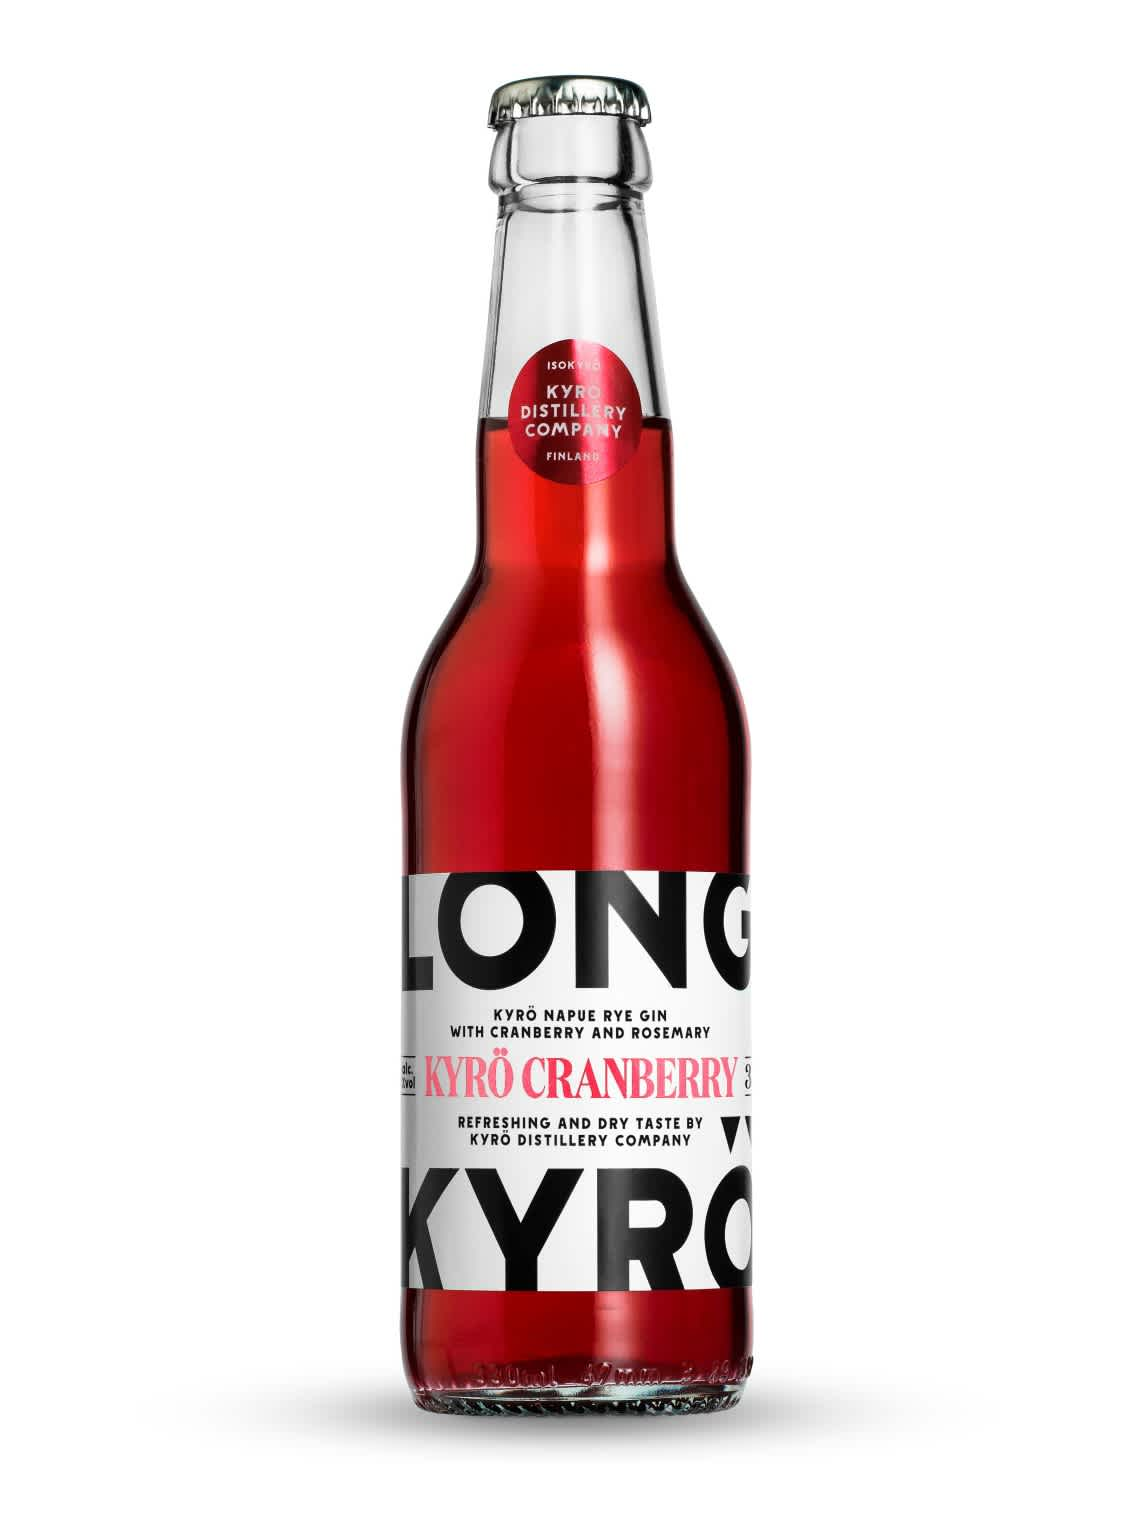 Product photo: 350ml bottle filled with bright red Kyrö Cranberry long drink.